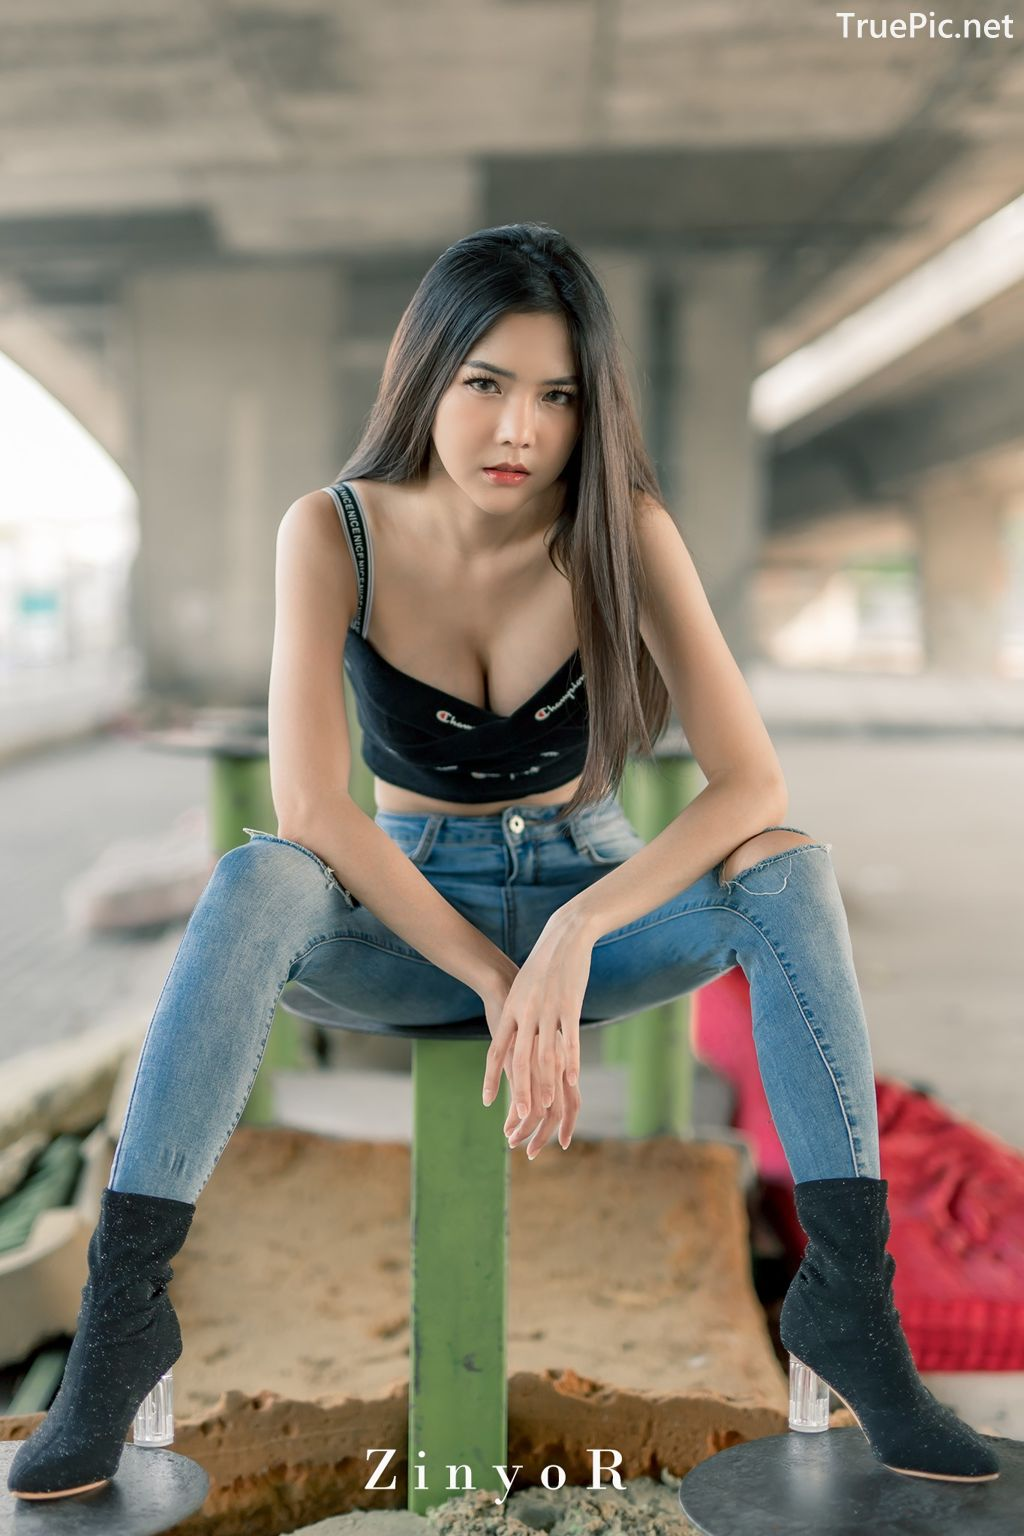 Image-Thailand-Model-Phitchamol-Srijantanet-Black-Crop-Top-and-Jean-TruePic.net- Picture-5